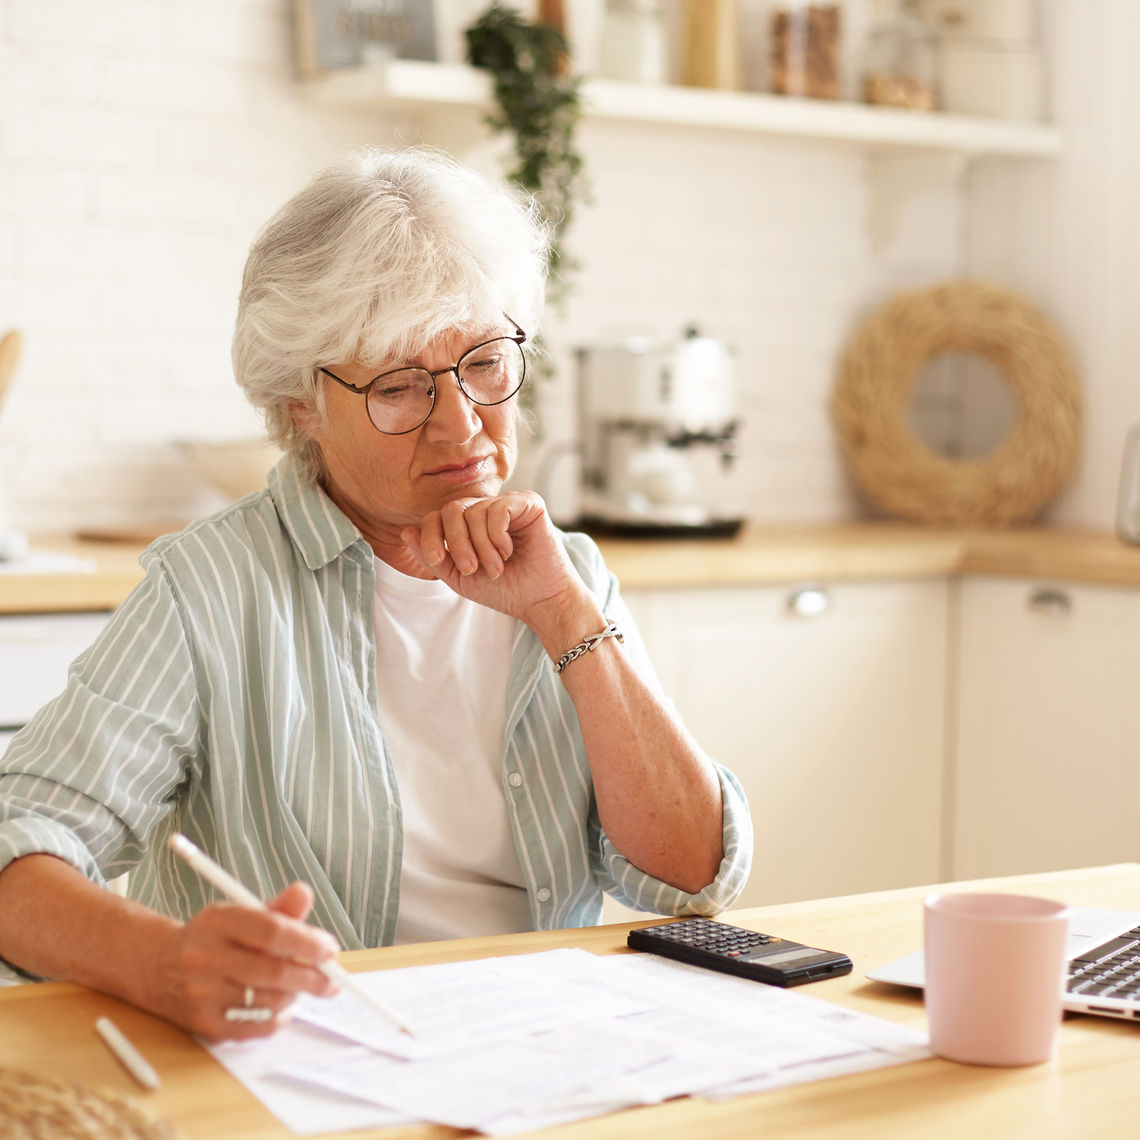 Casually dressed gray haired woman on retirement managing family budget at home, sitting in kitchen with bills, laptop, calculator and mug, writing down in papers using pencil, having focused look